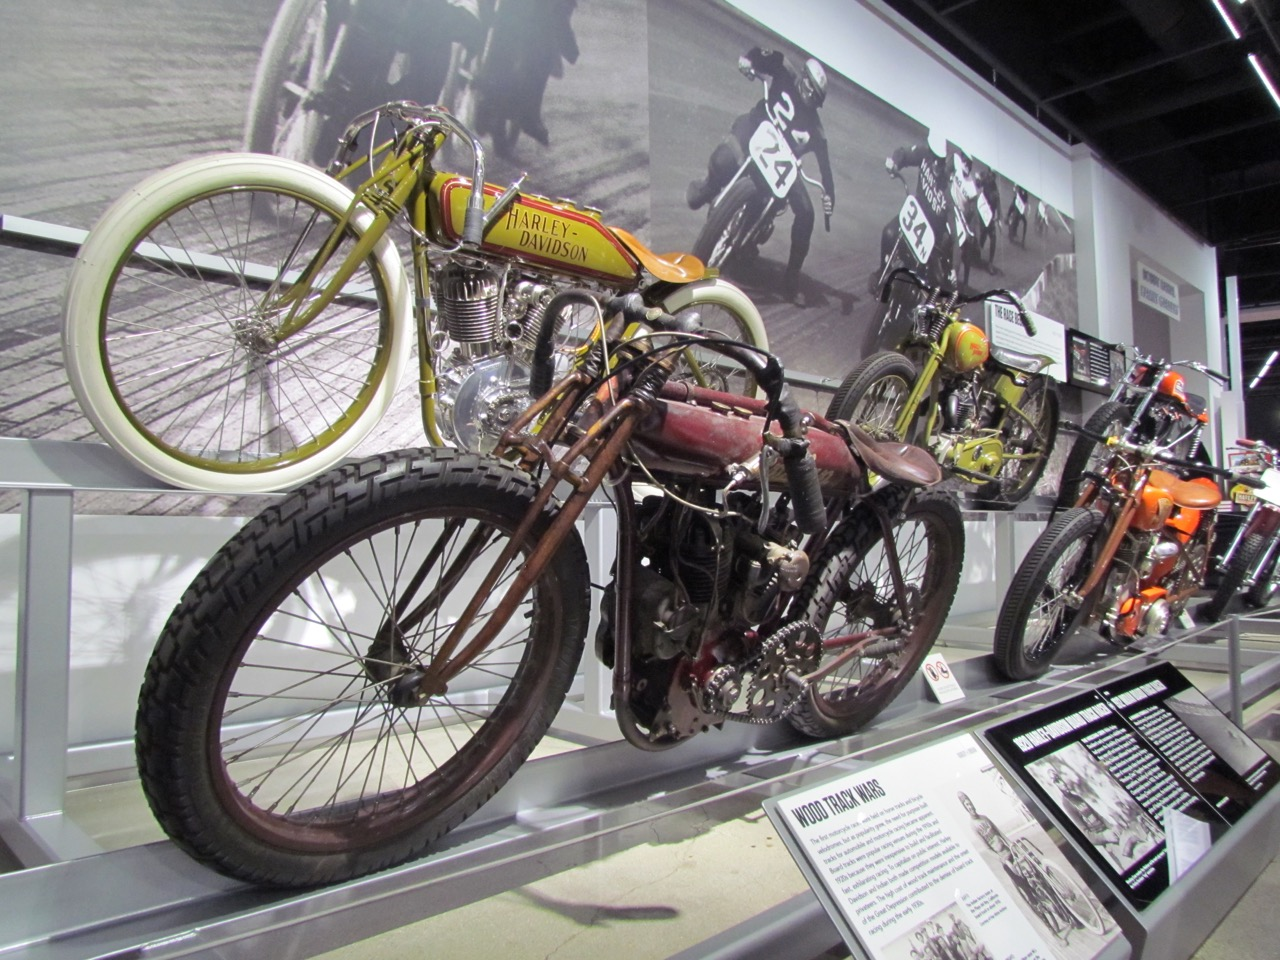 Vintage racing motorcycles are only part of the Harley vs. Indian exhibit at the Petersen |Larry Edsall photos